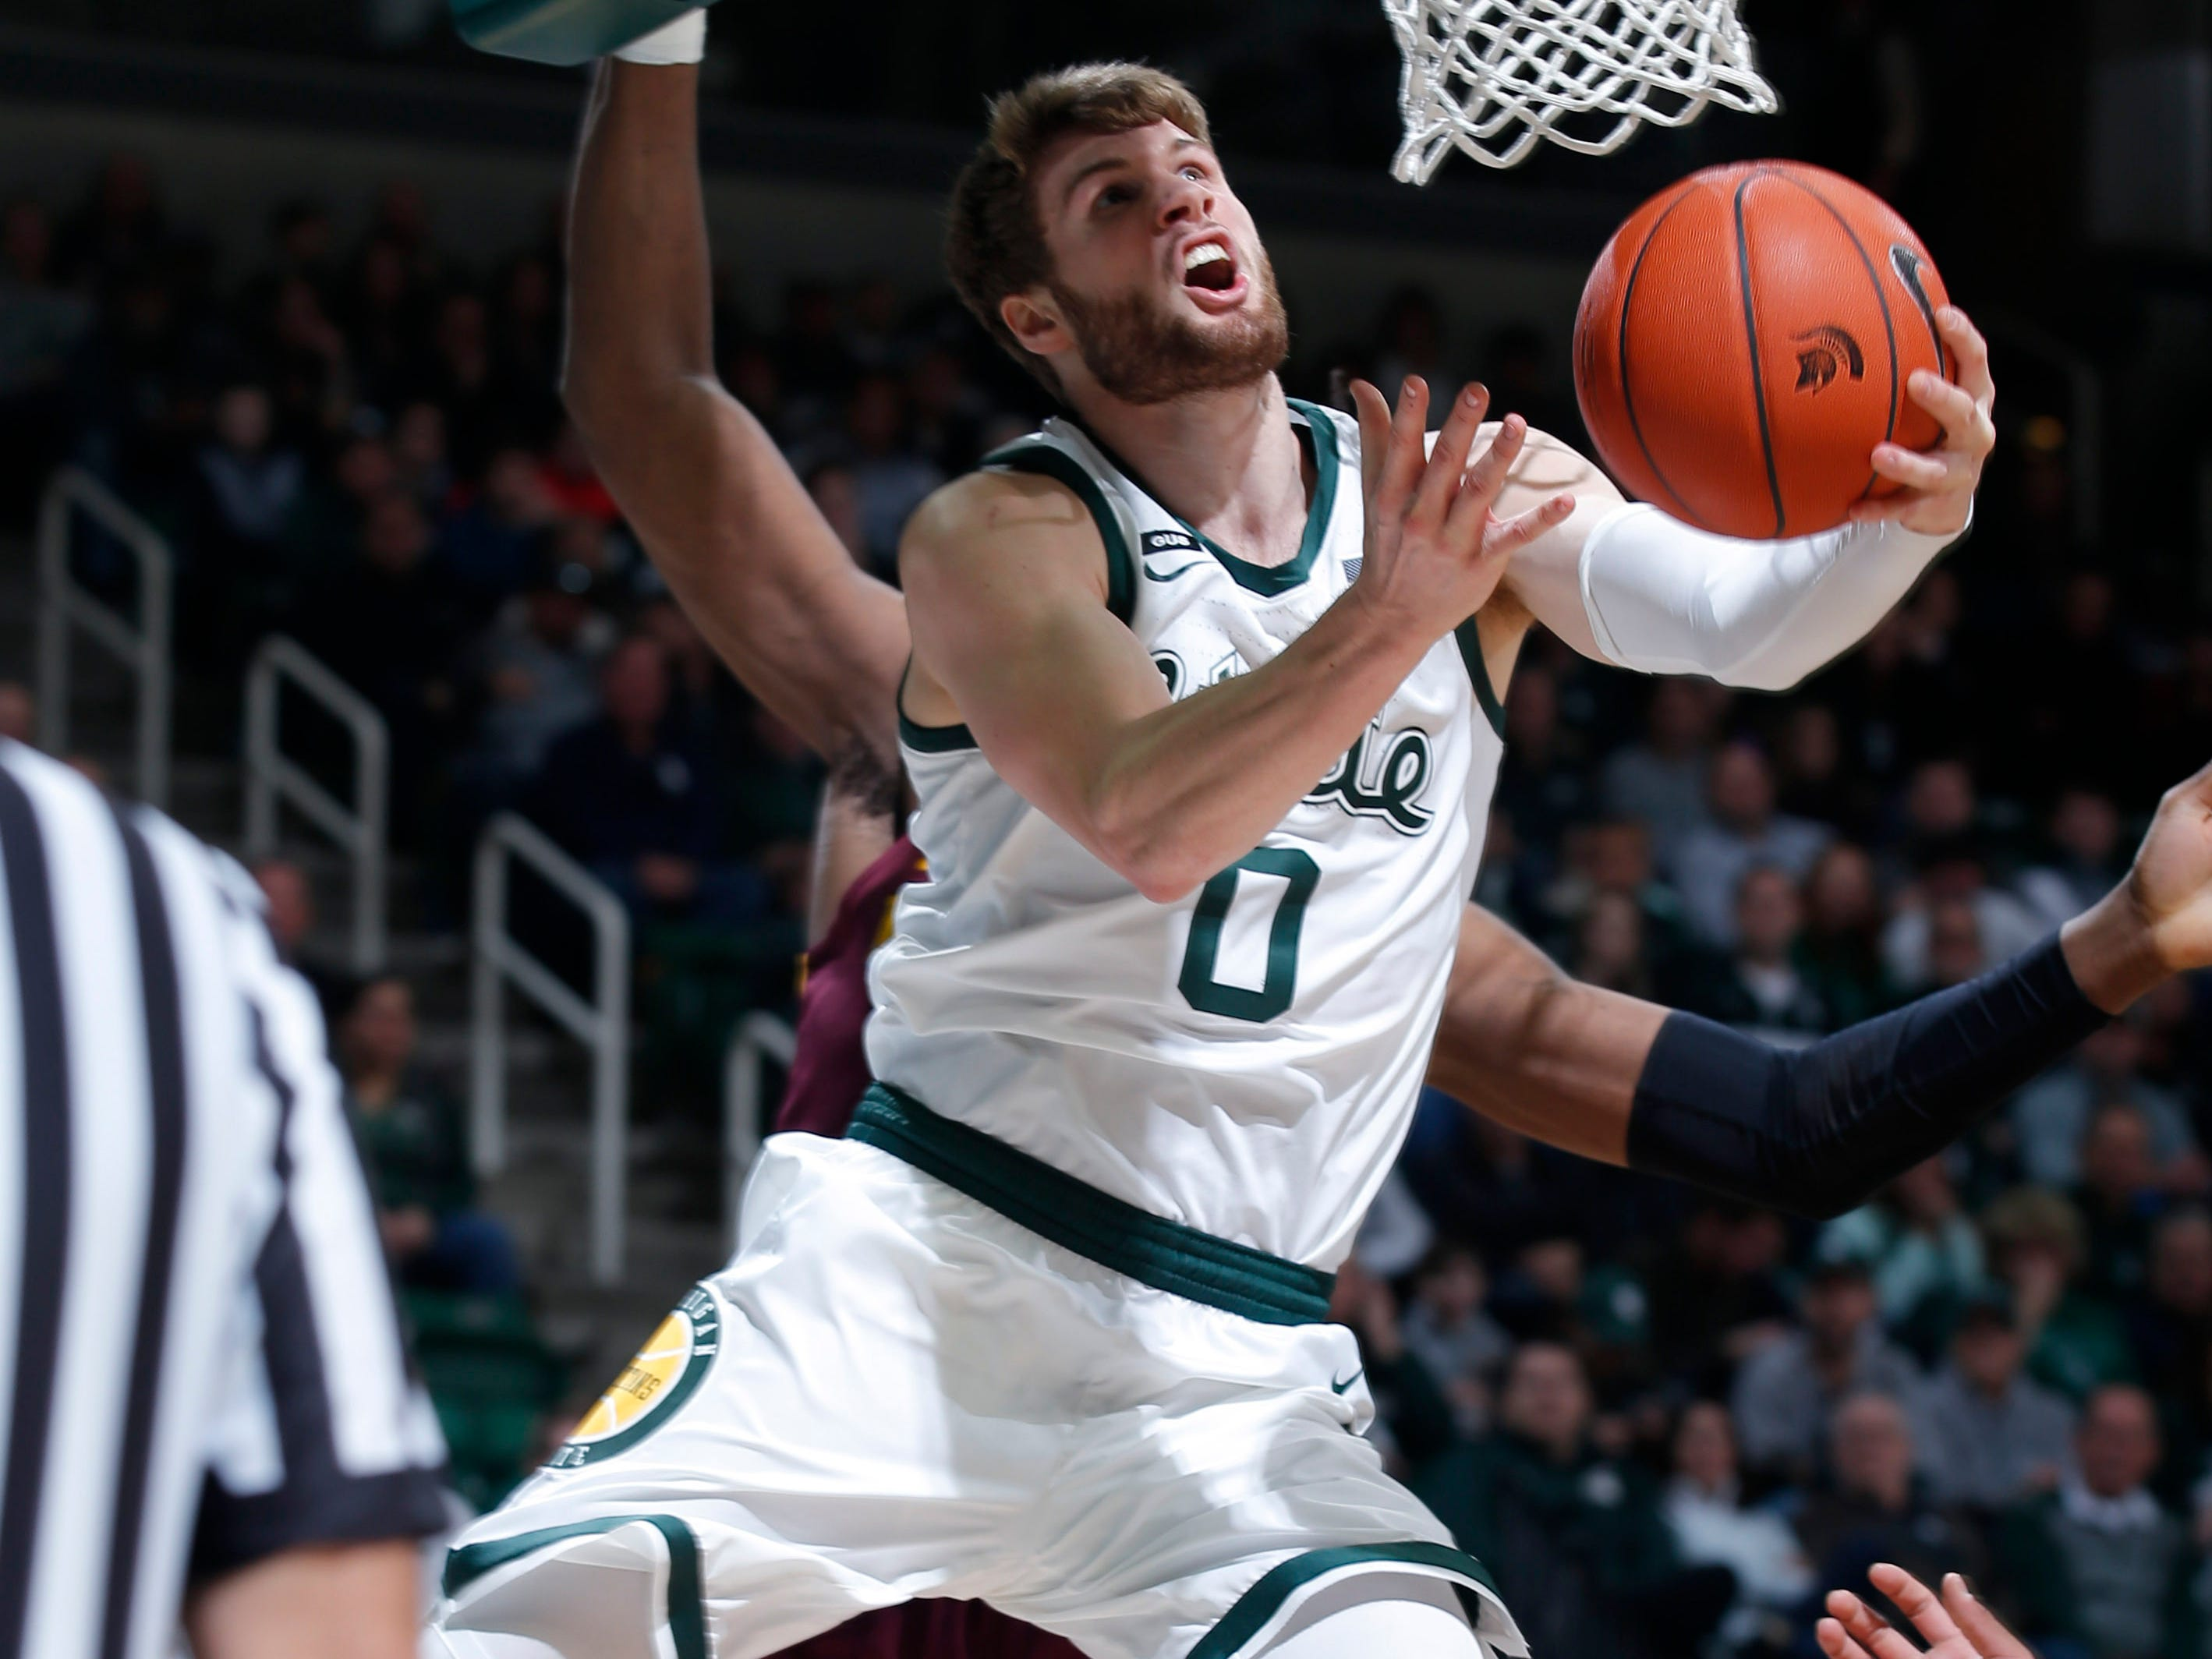 Michigan State's Kyle Ahrens (0) goes to the basket against Minnesota during the first half.